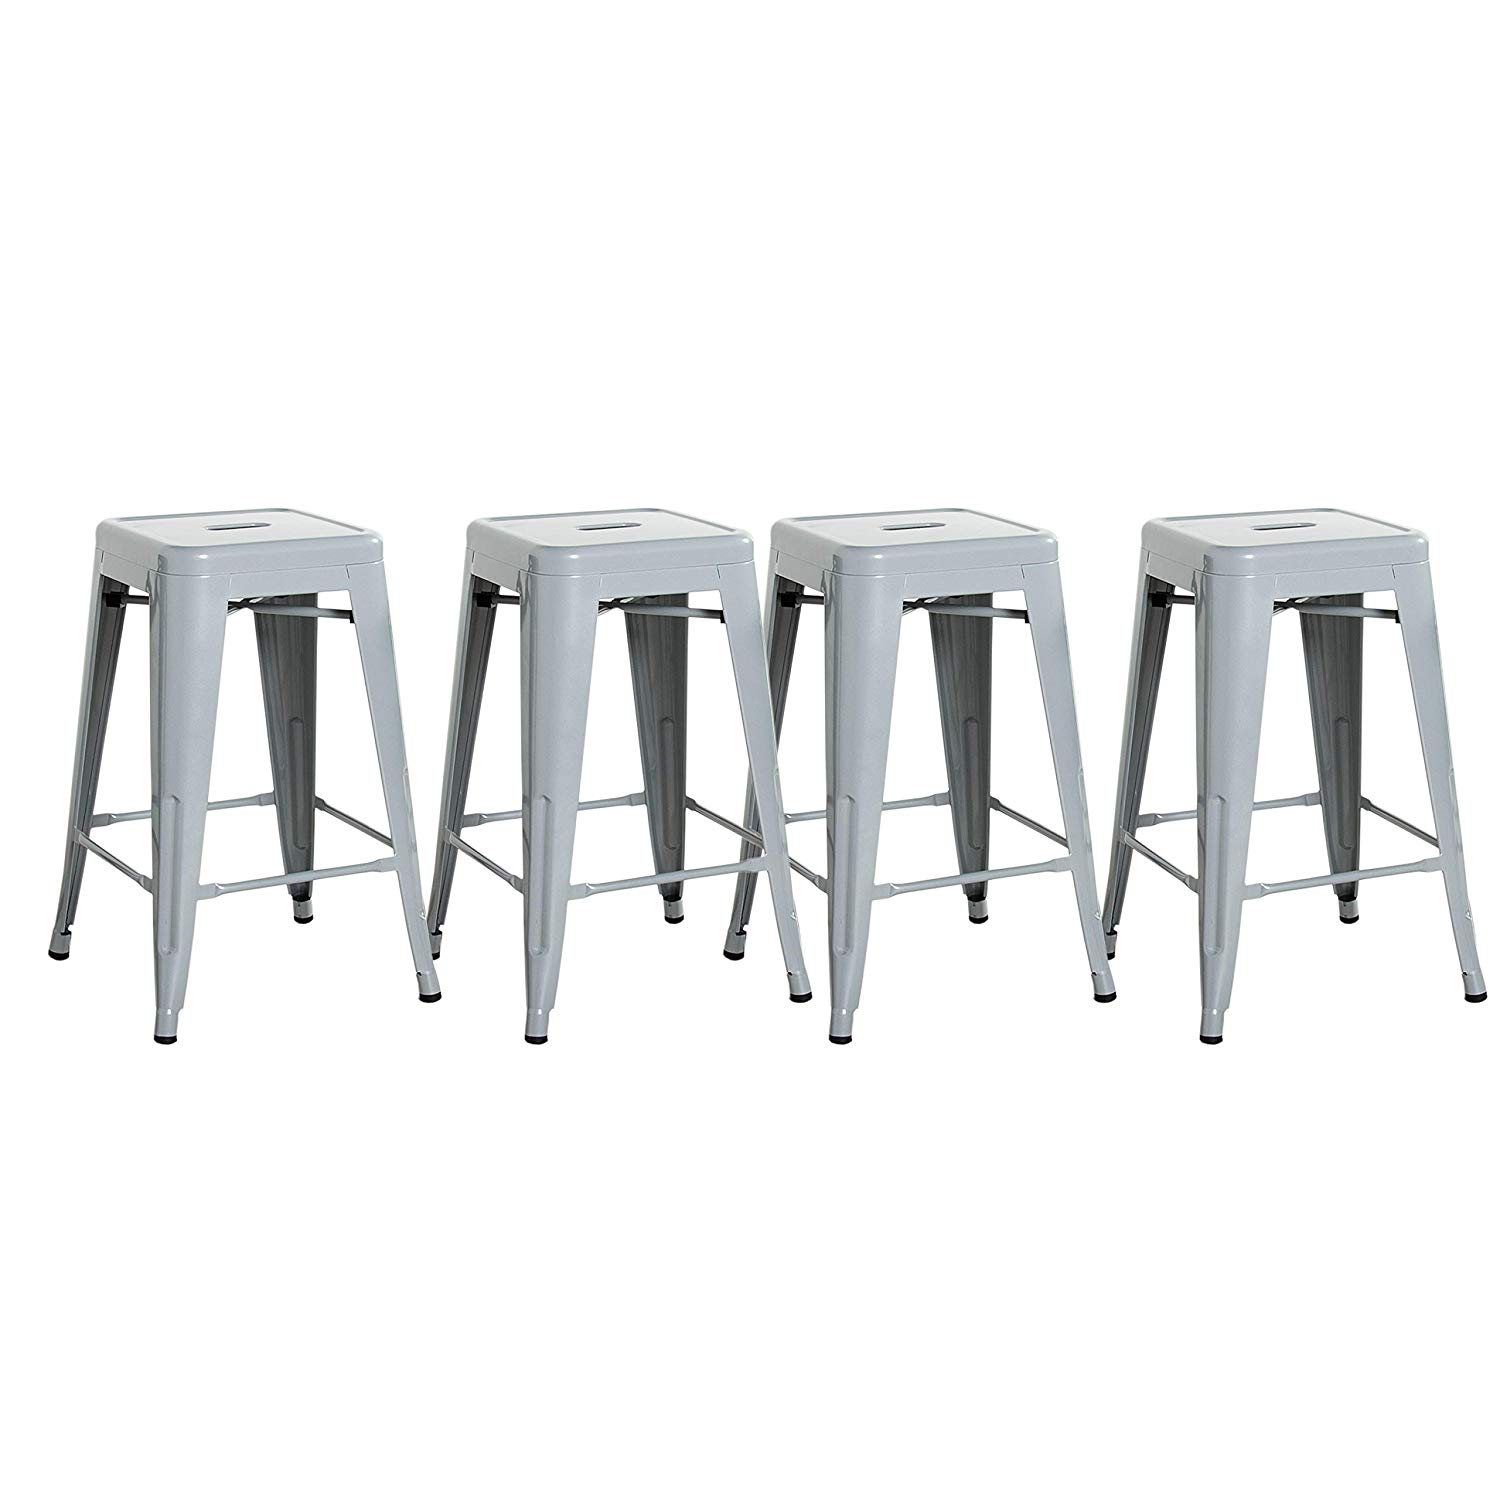 Cap Living 24 Inches Stackable Sturdy Square Seat Metal Bar Stools